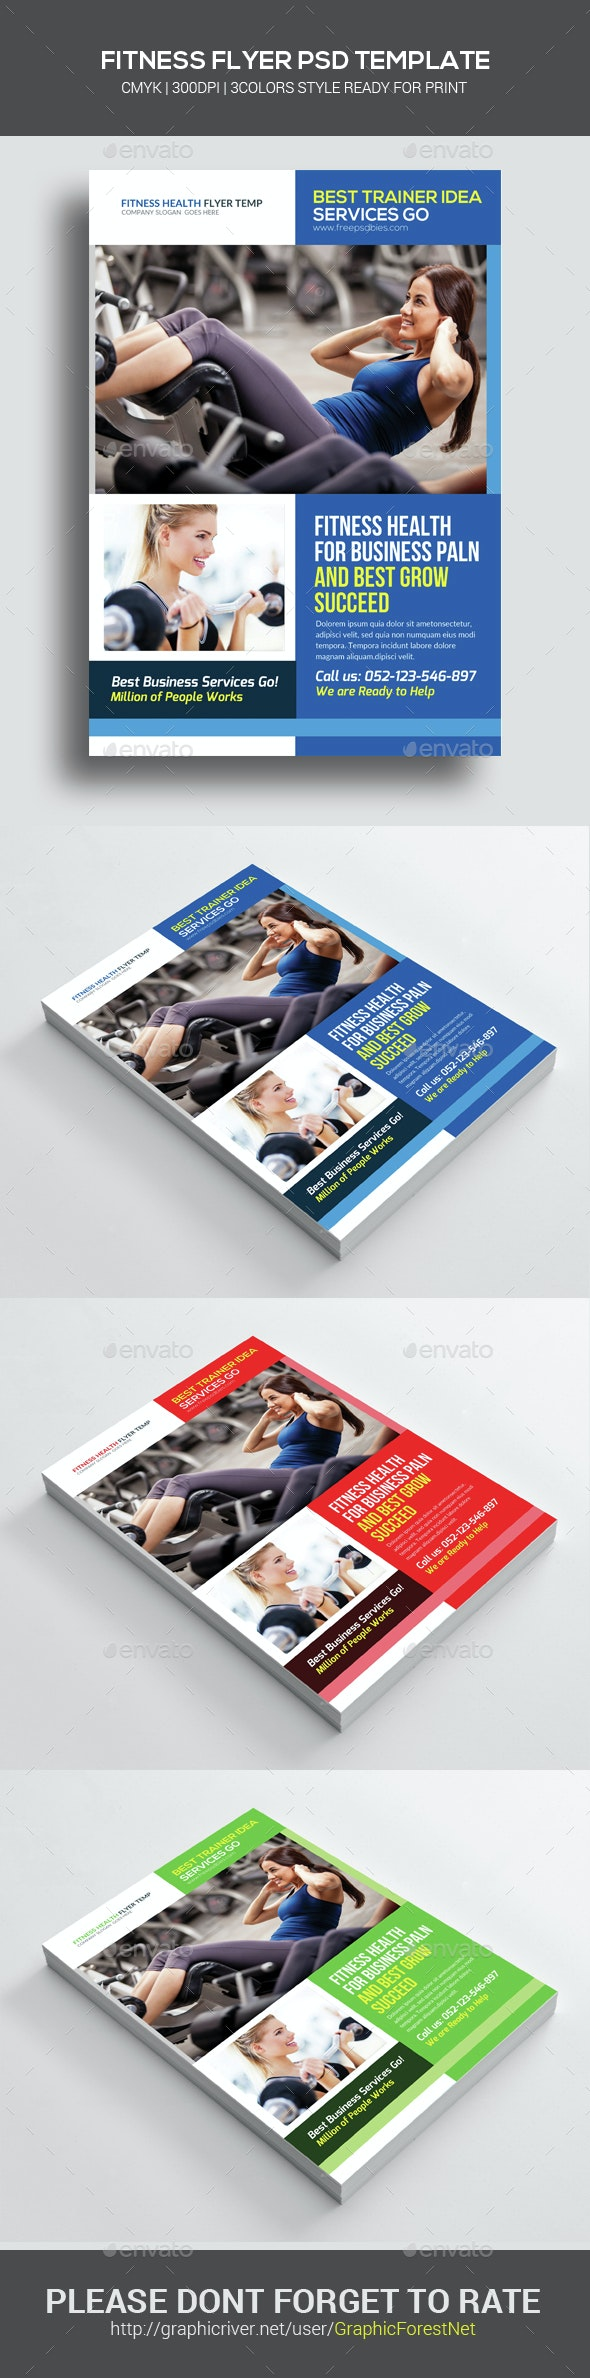 Health & Fitness Flyer - Corporate Flyers